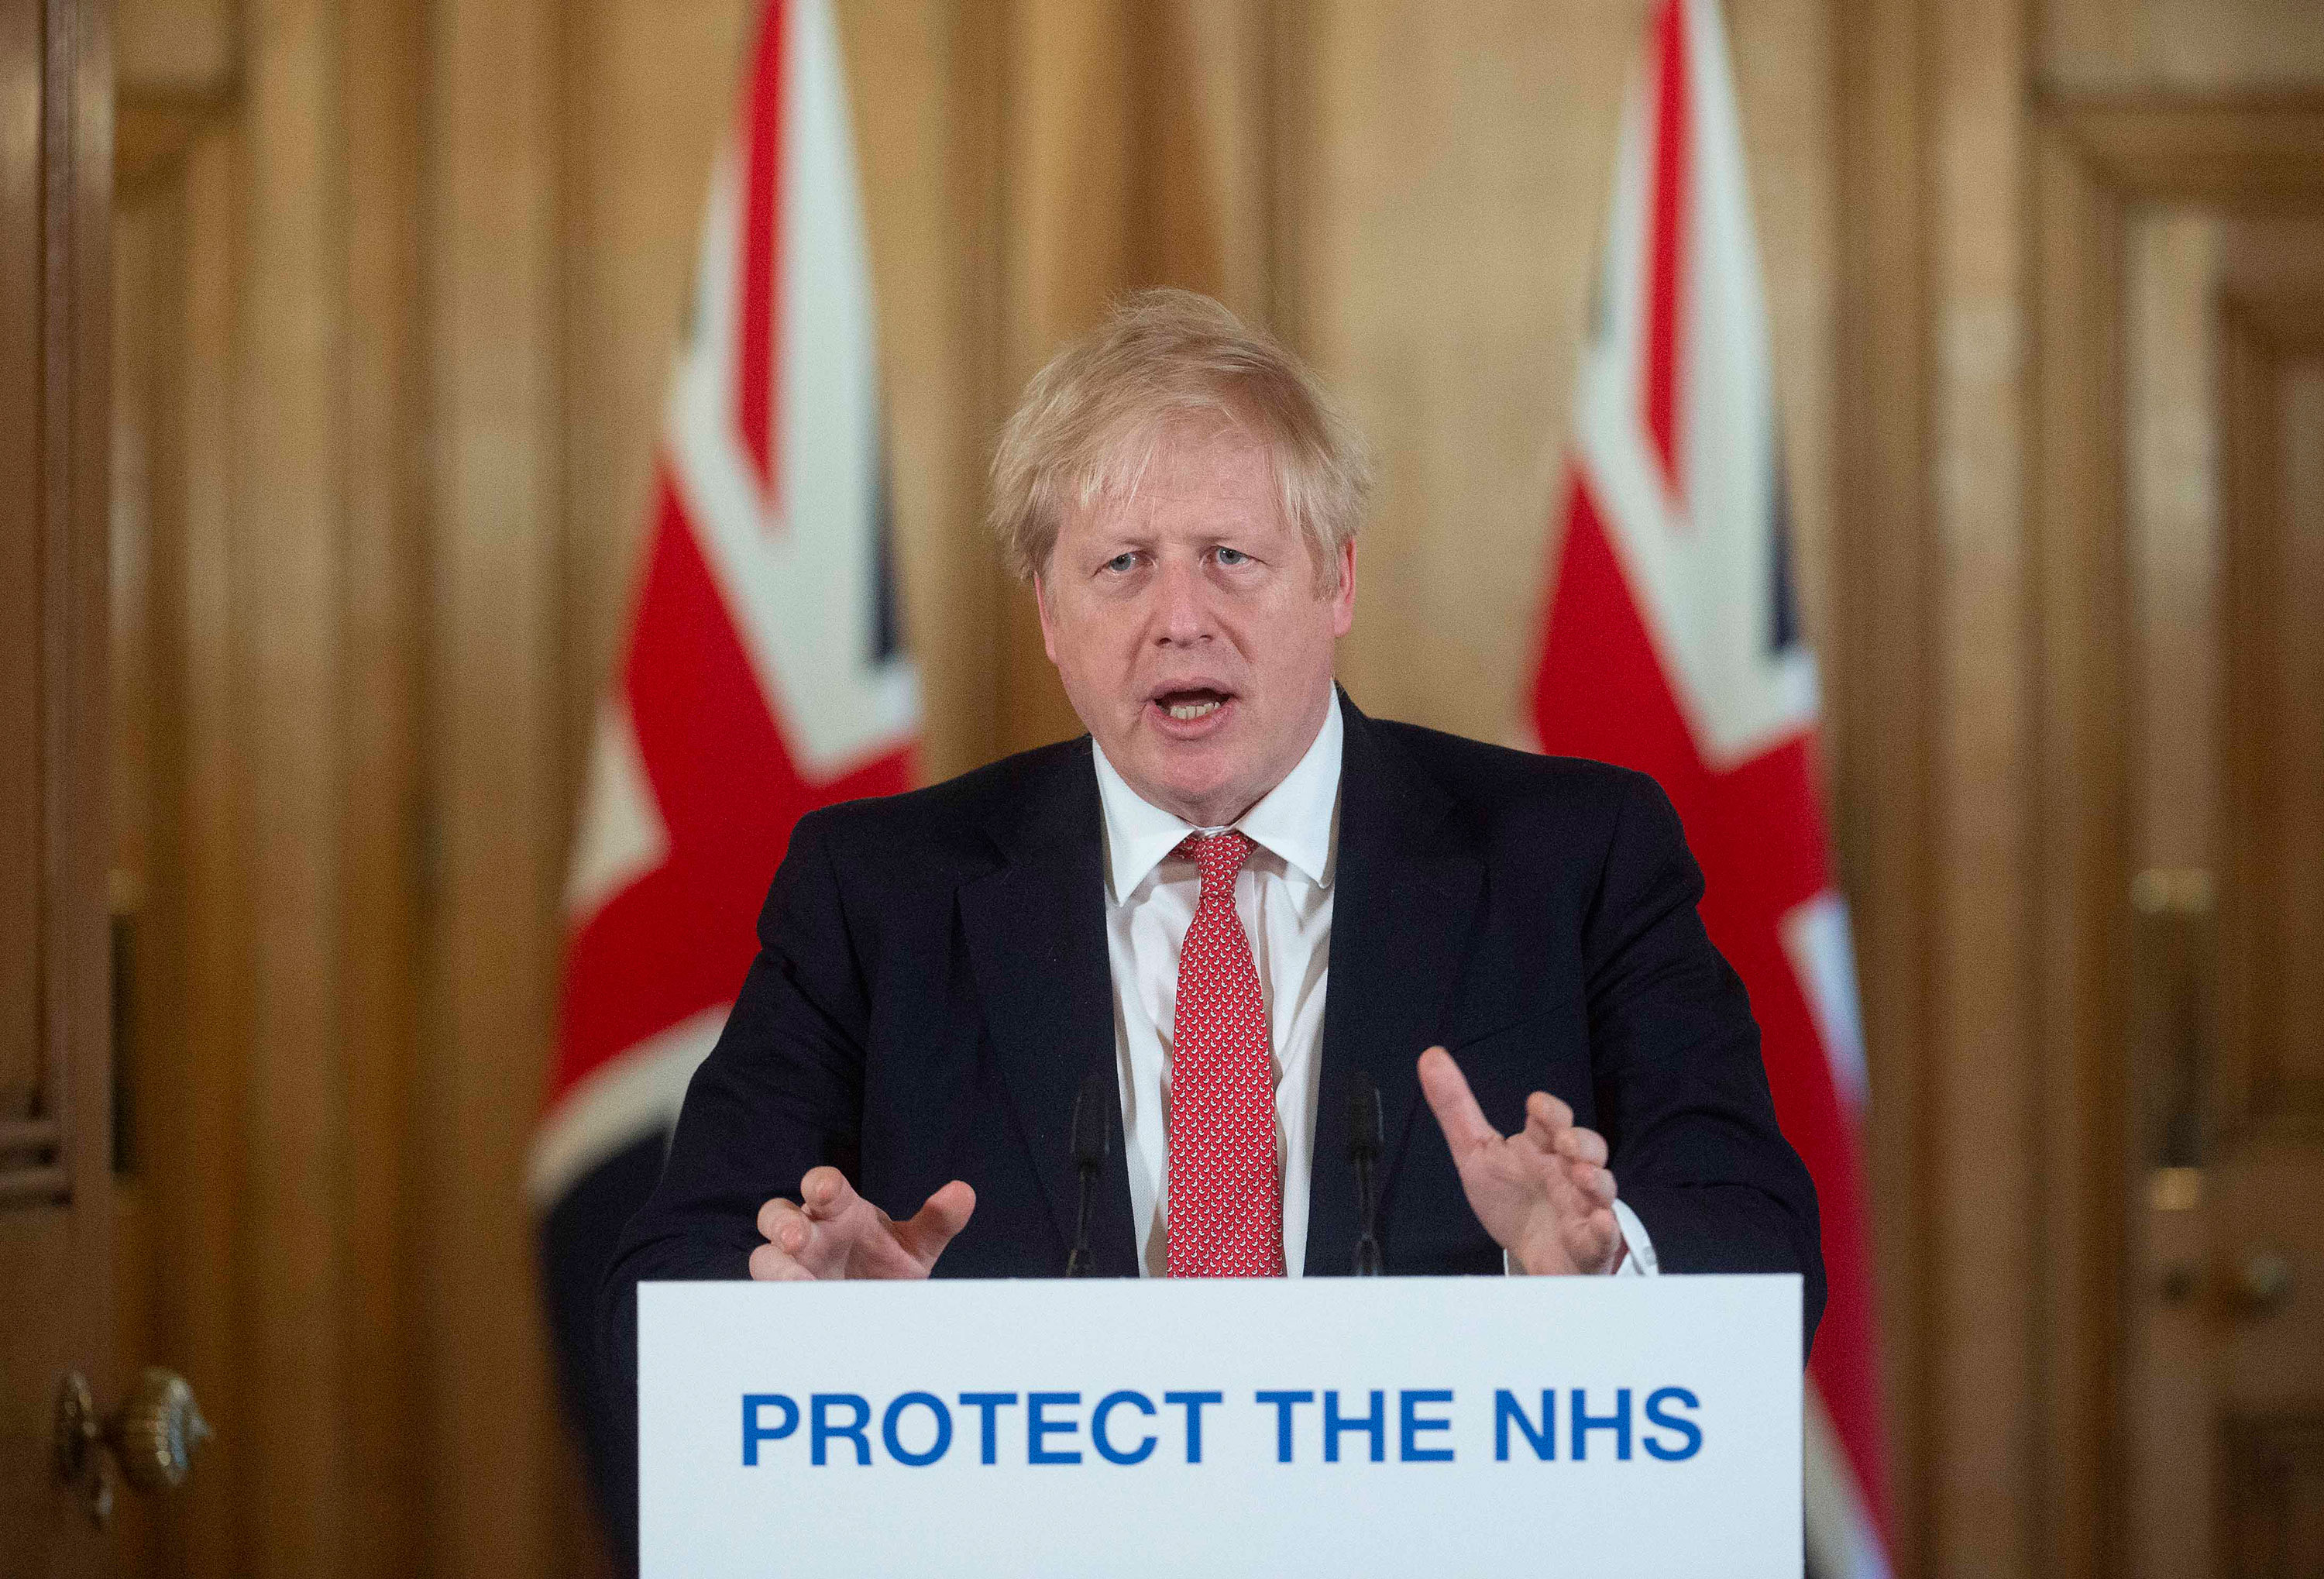 British Prime Minister Boris Johnson speaks during a daily press conference at 10 Downing Street on March 20 in London, England.